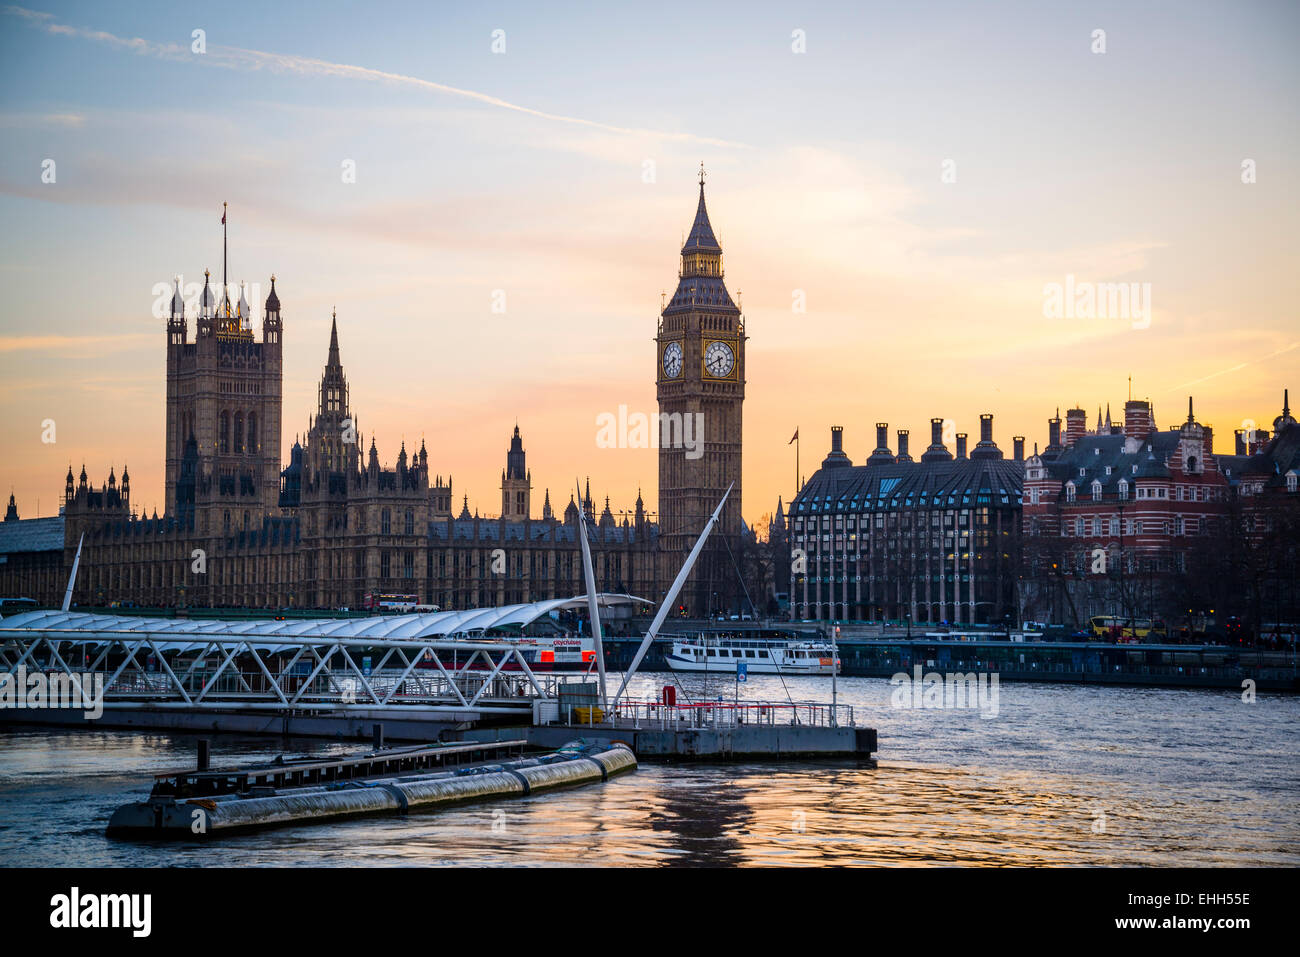 Big Ben and Houses of Parliament at dusk, London, England, Uk - Stock Image